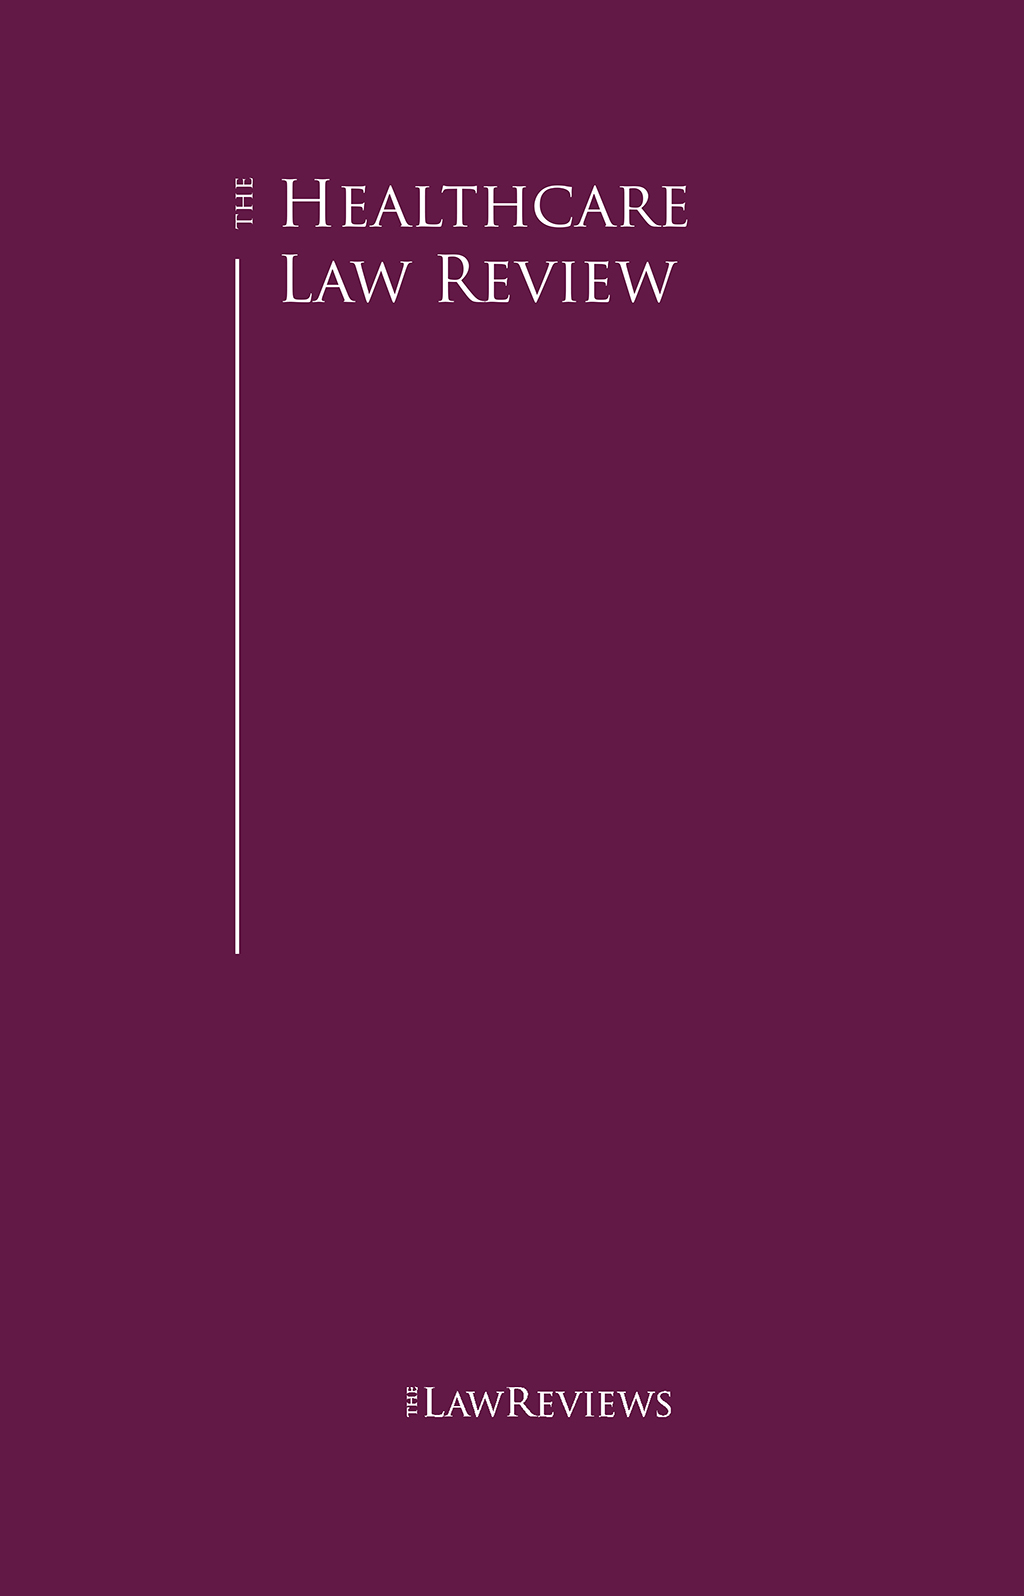 The Healthcare Law Review